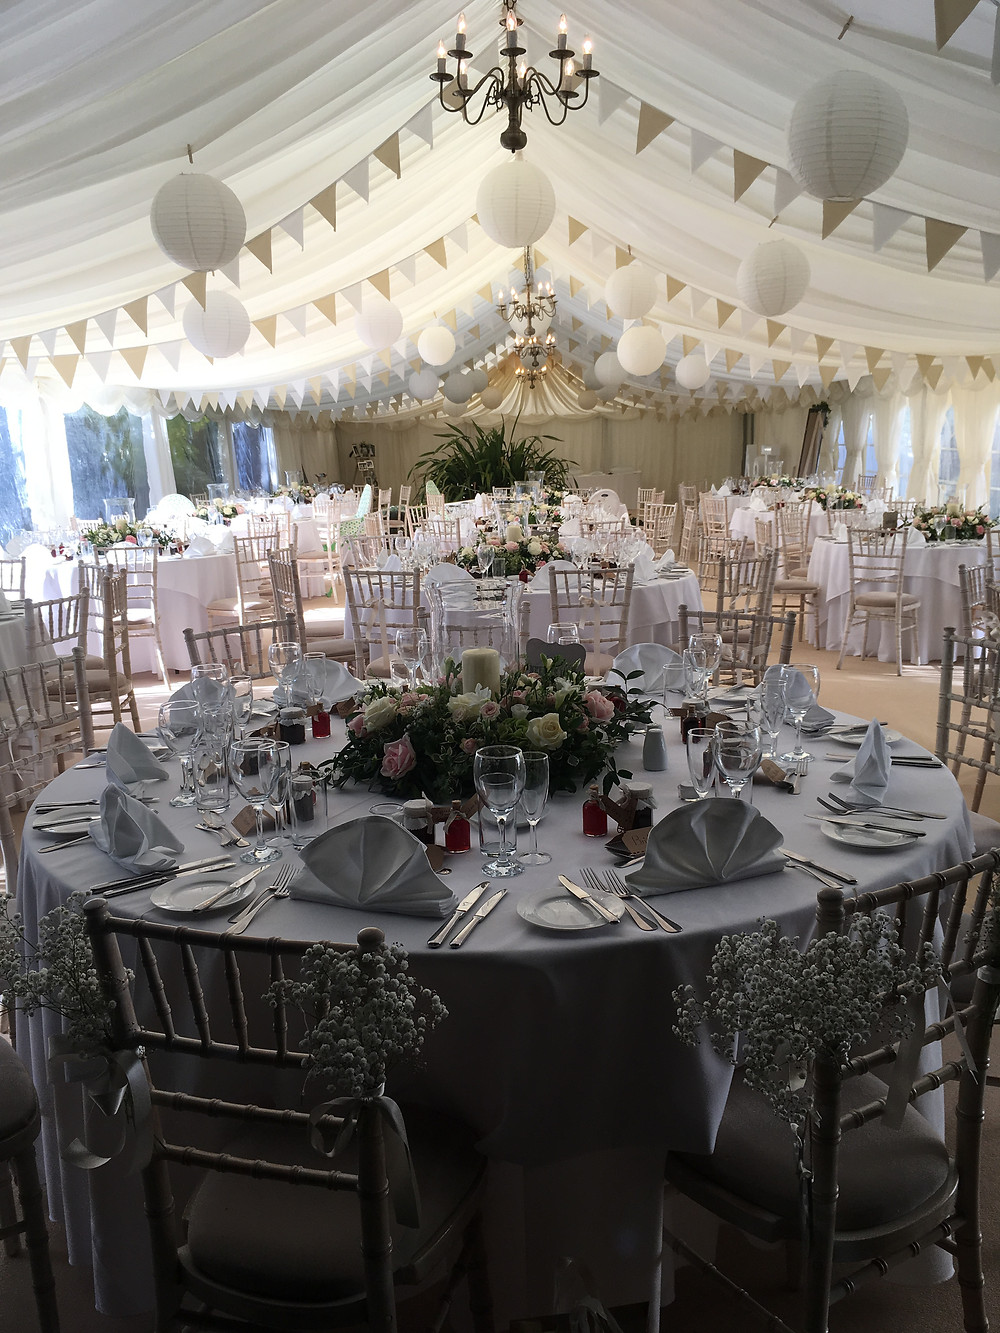 Marquees To Support The Hospitality Industry